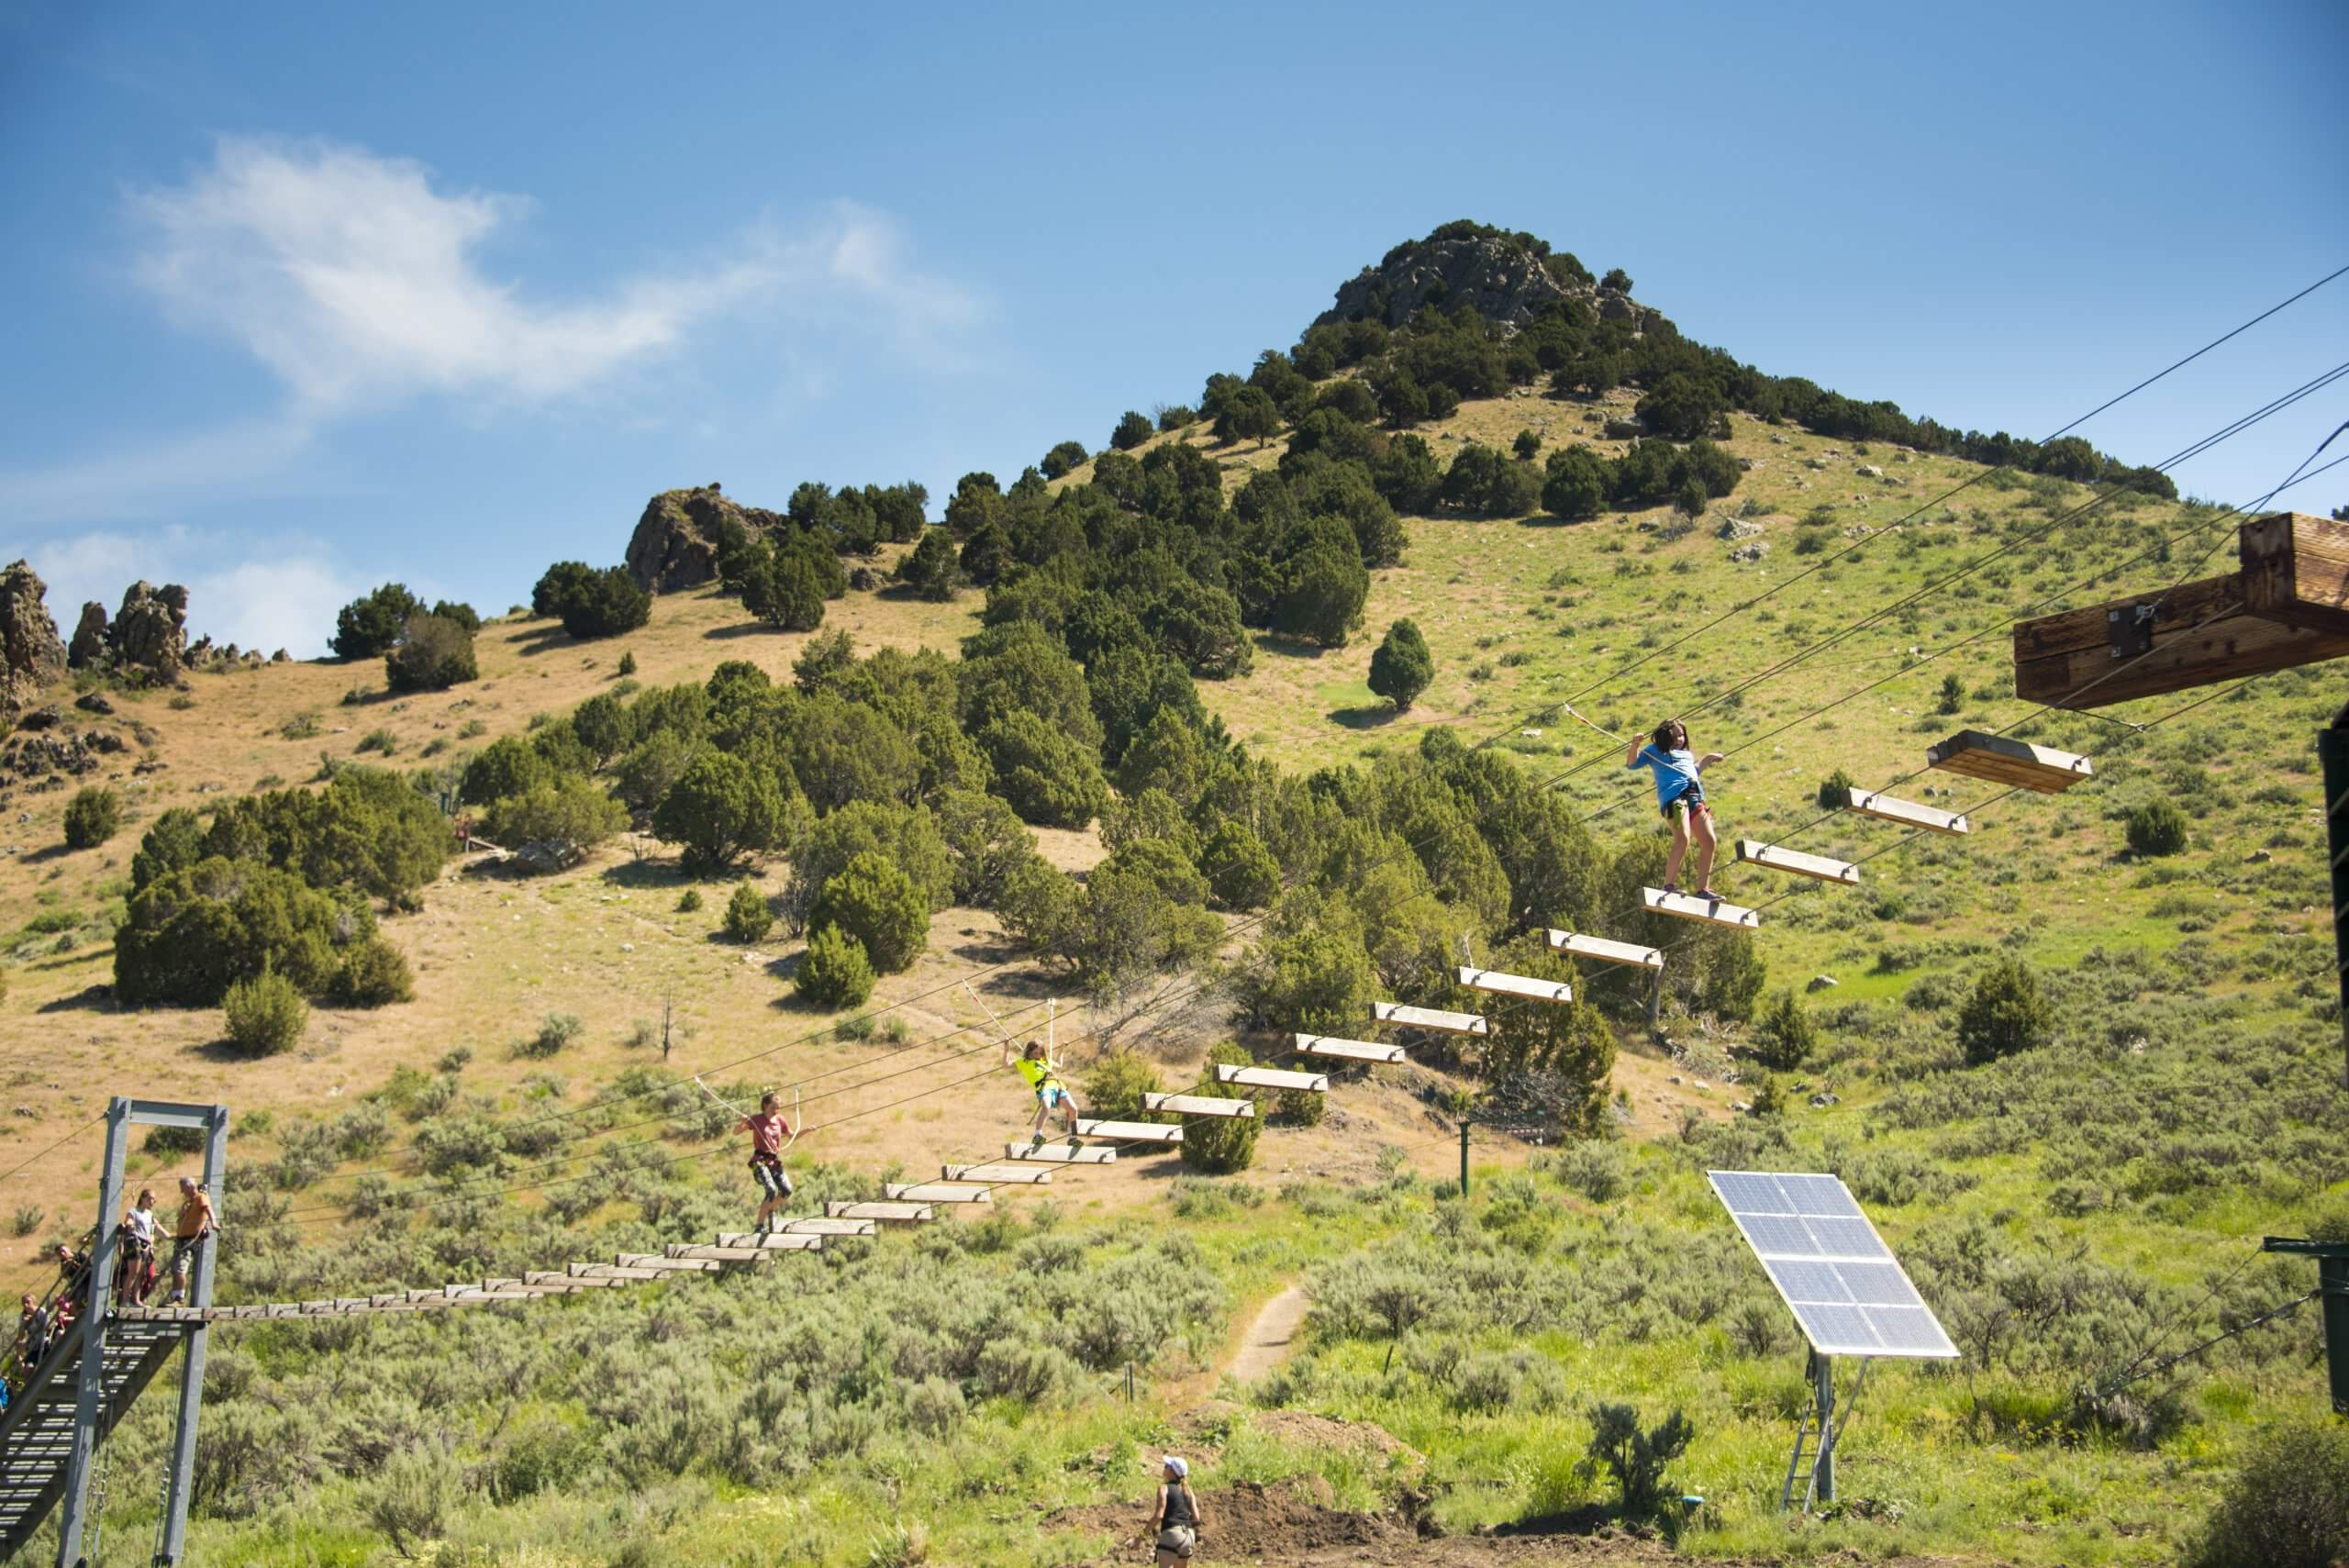 Obstacle course at Lava Zipline operated out of Lava Springs, Idaho.